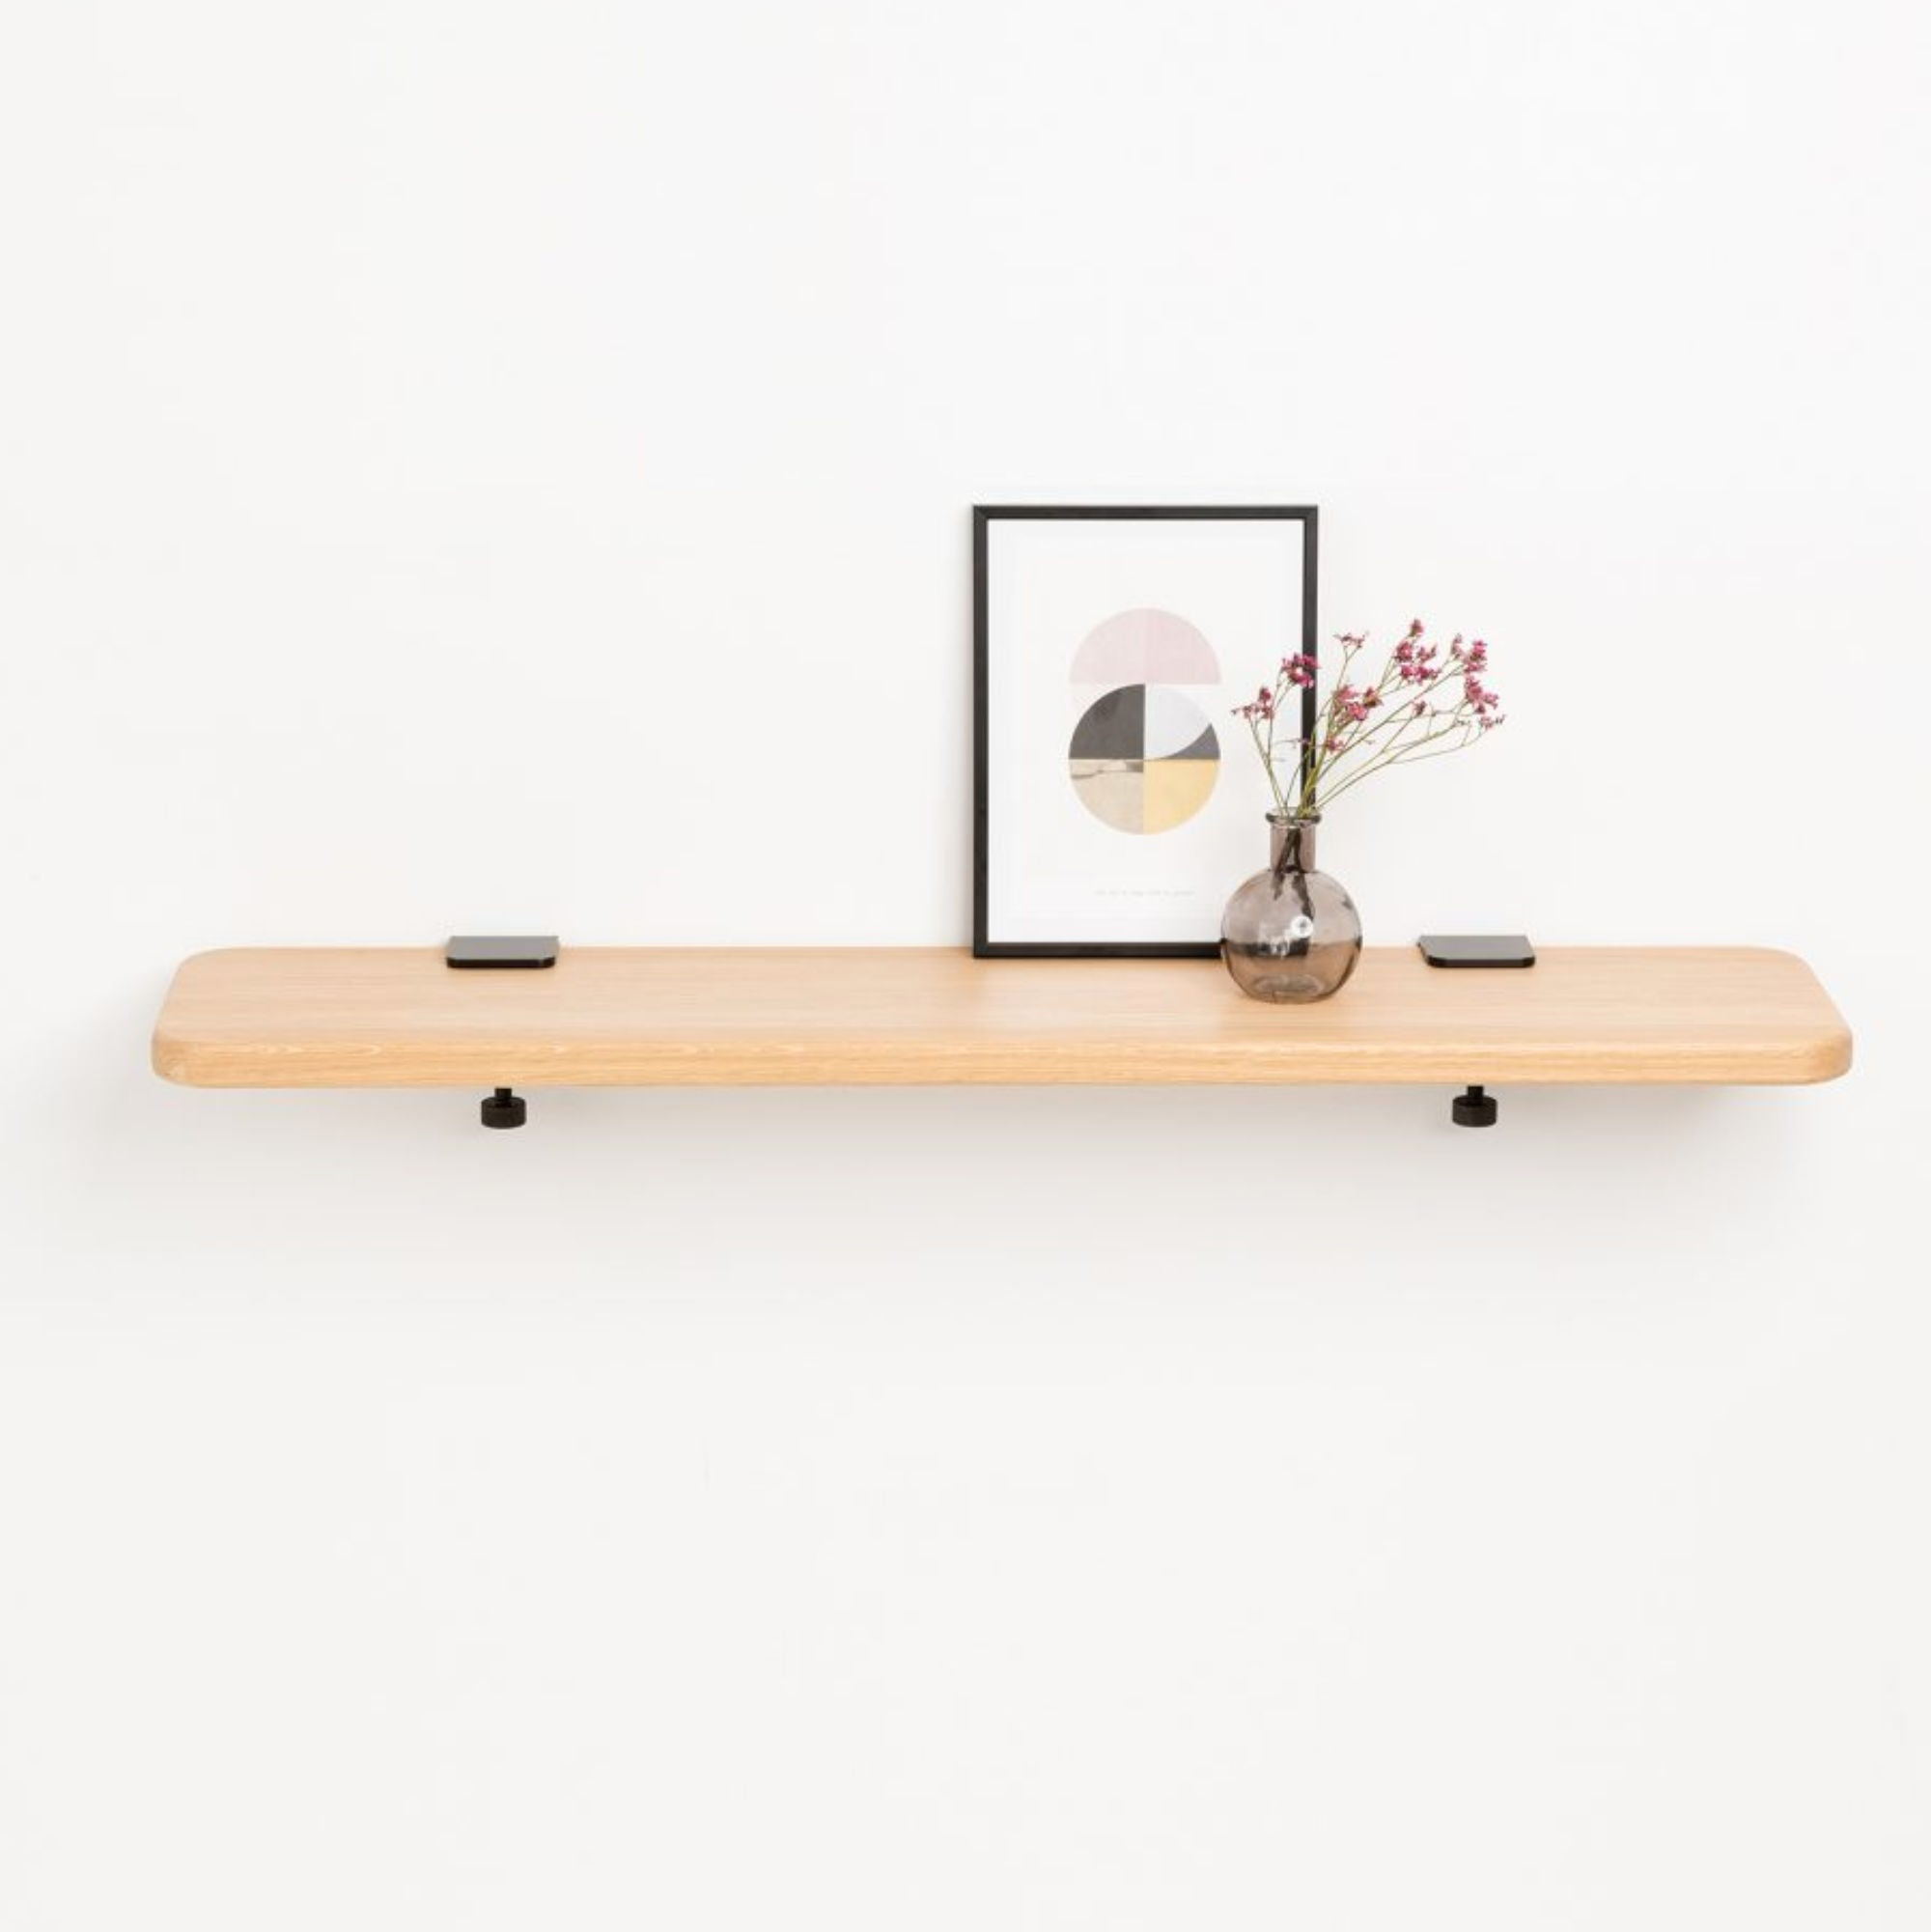 Tiptoe Solid oak shelf, 90 * 20cm